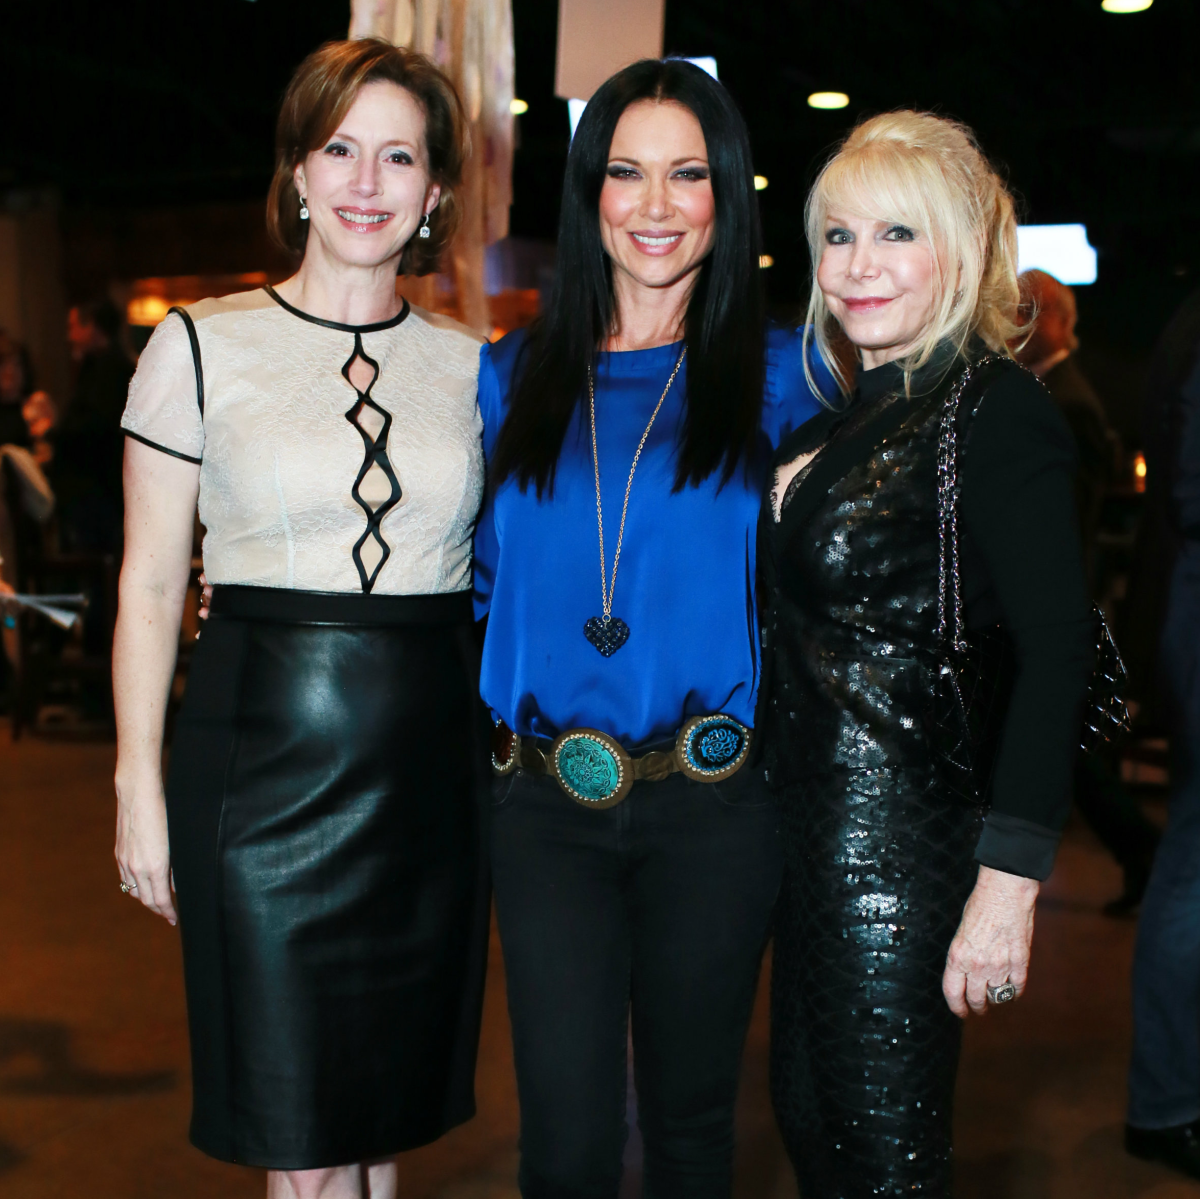 Laura Downing, LeeAnne Locken, Tricia Sims